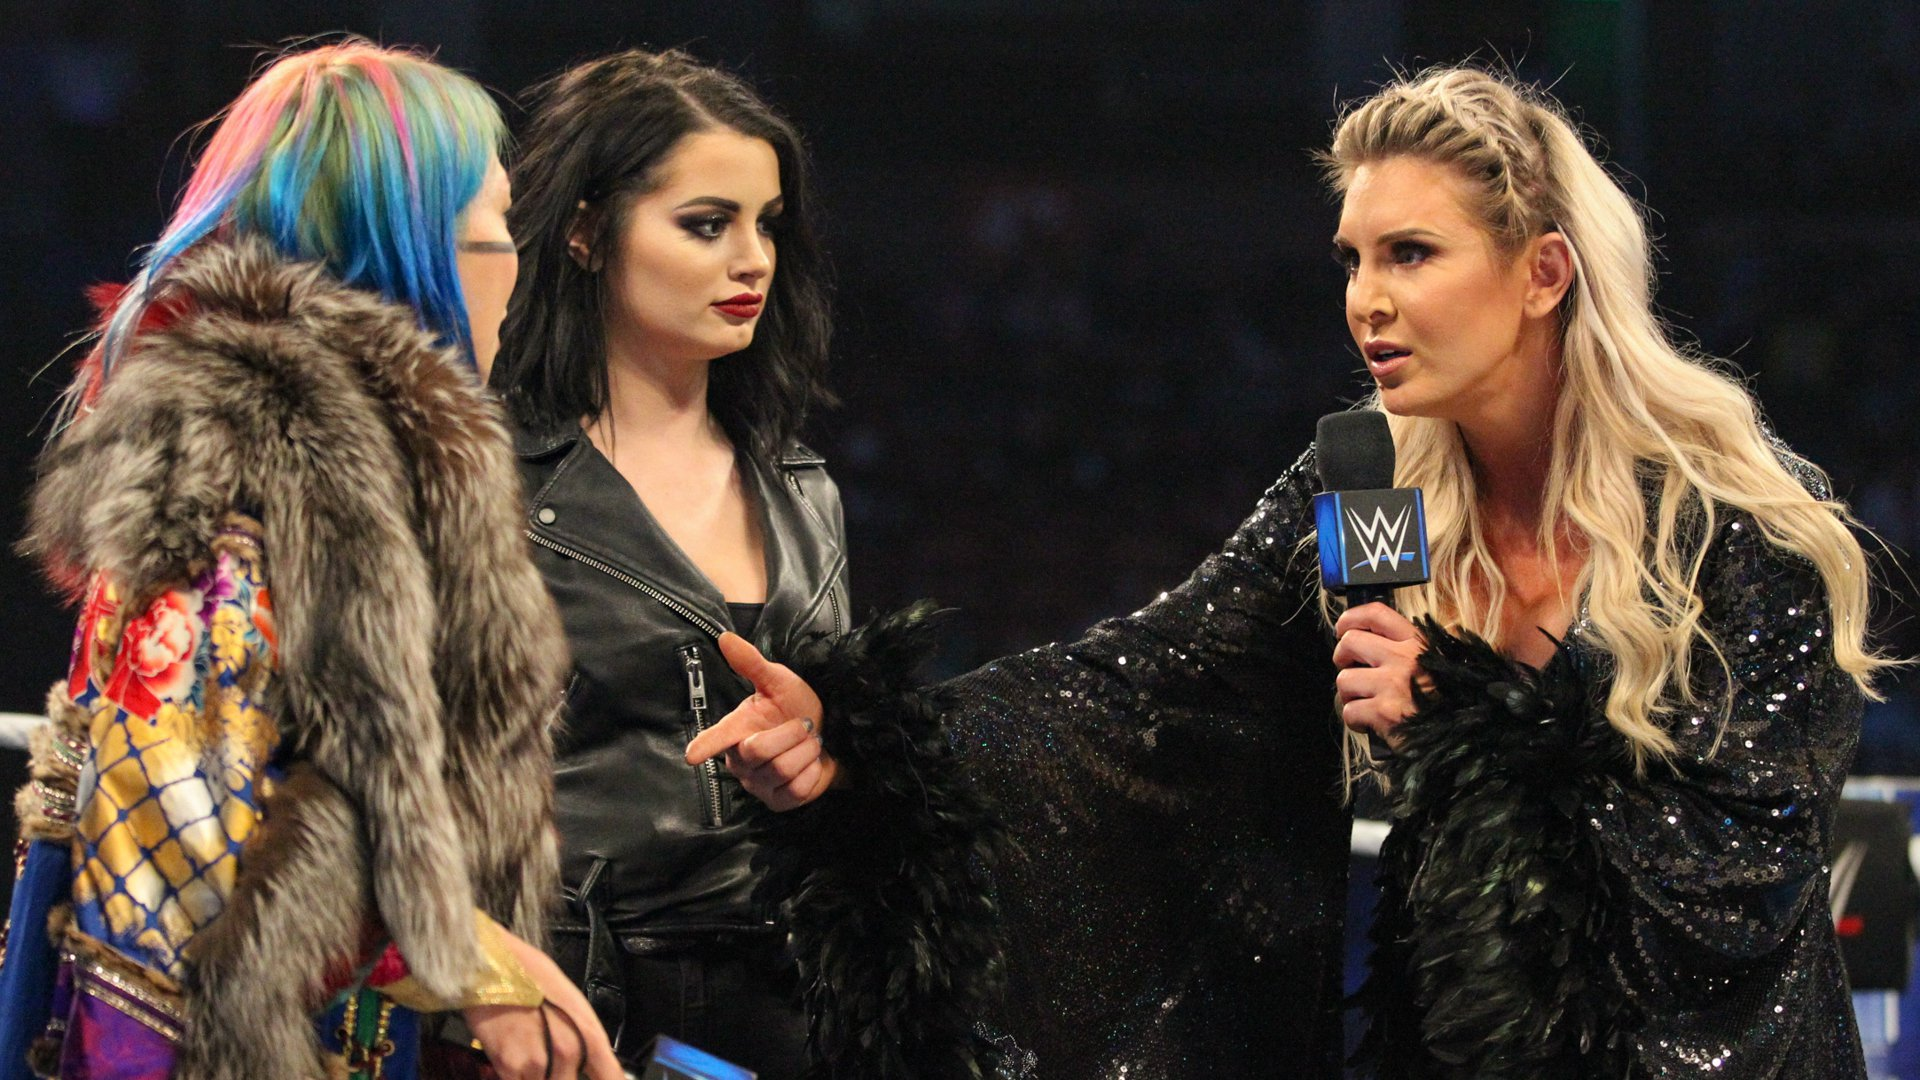 Charlotte recalls when she beat Asuka at WrestleMania and beat her streak.